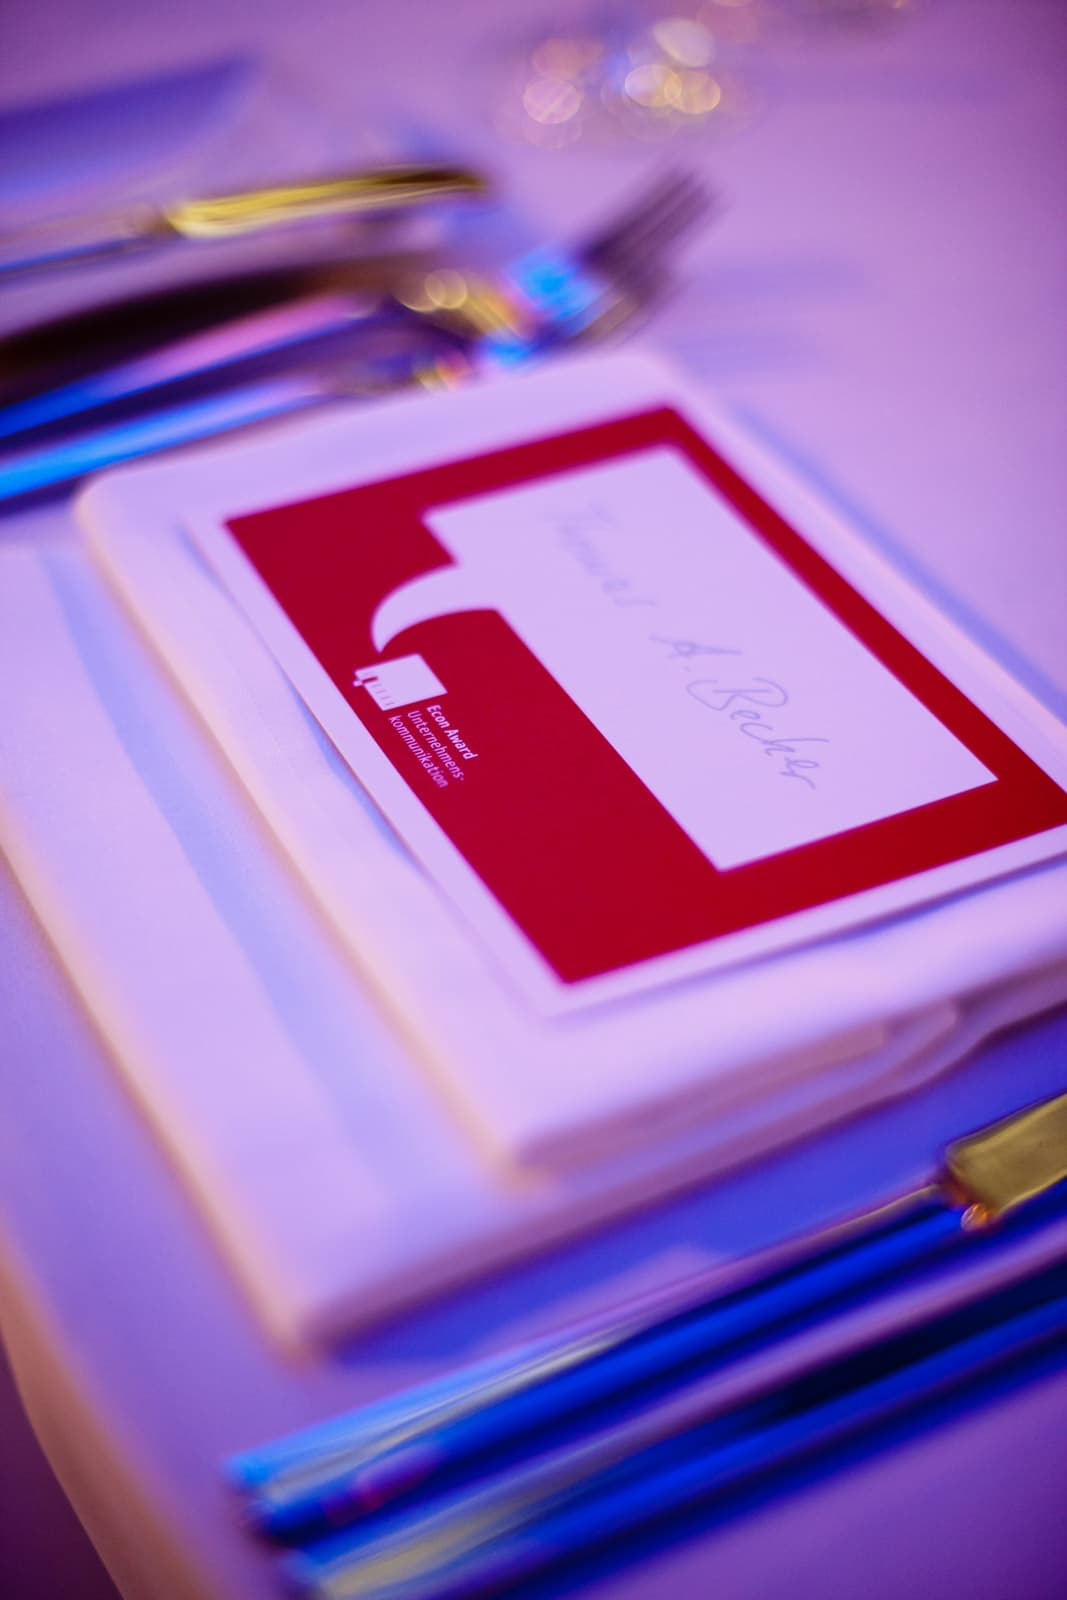 eventfotograf-berlin-econ-award-04.jpg